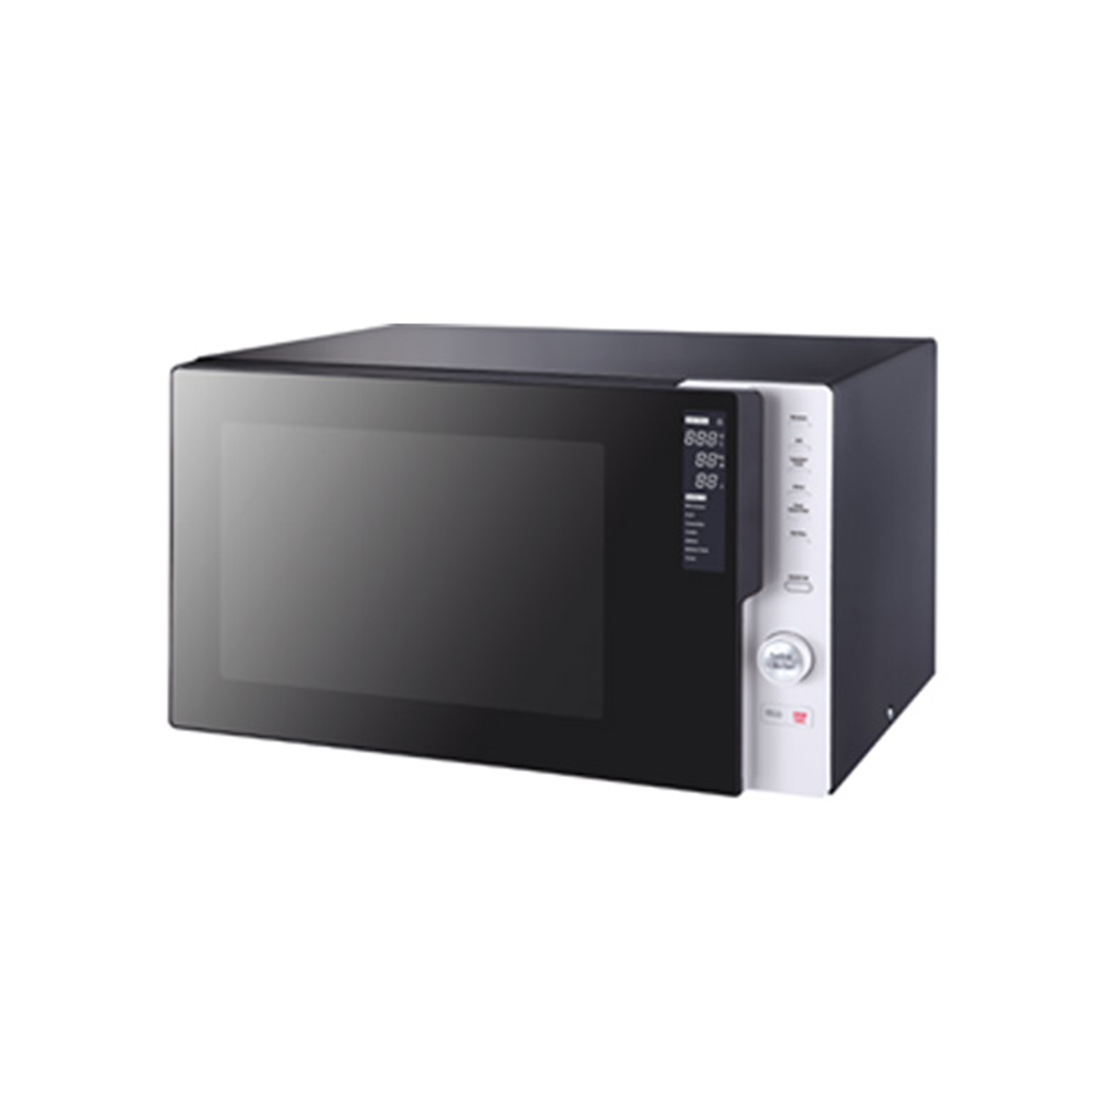 Singer Microwave Oven 28l Grill